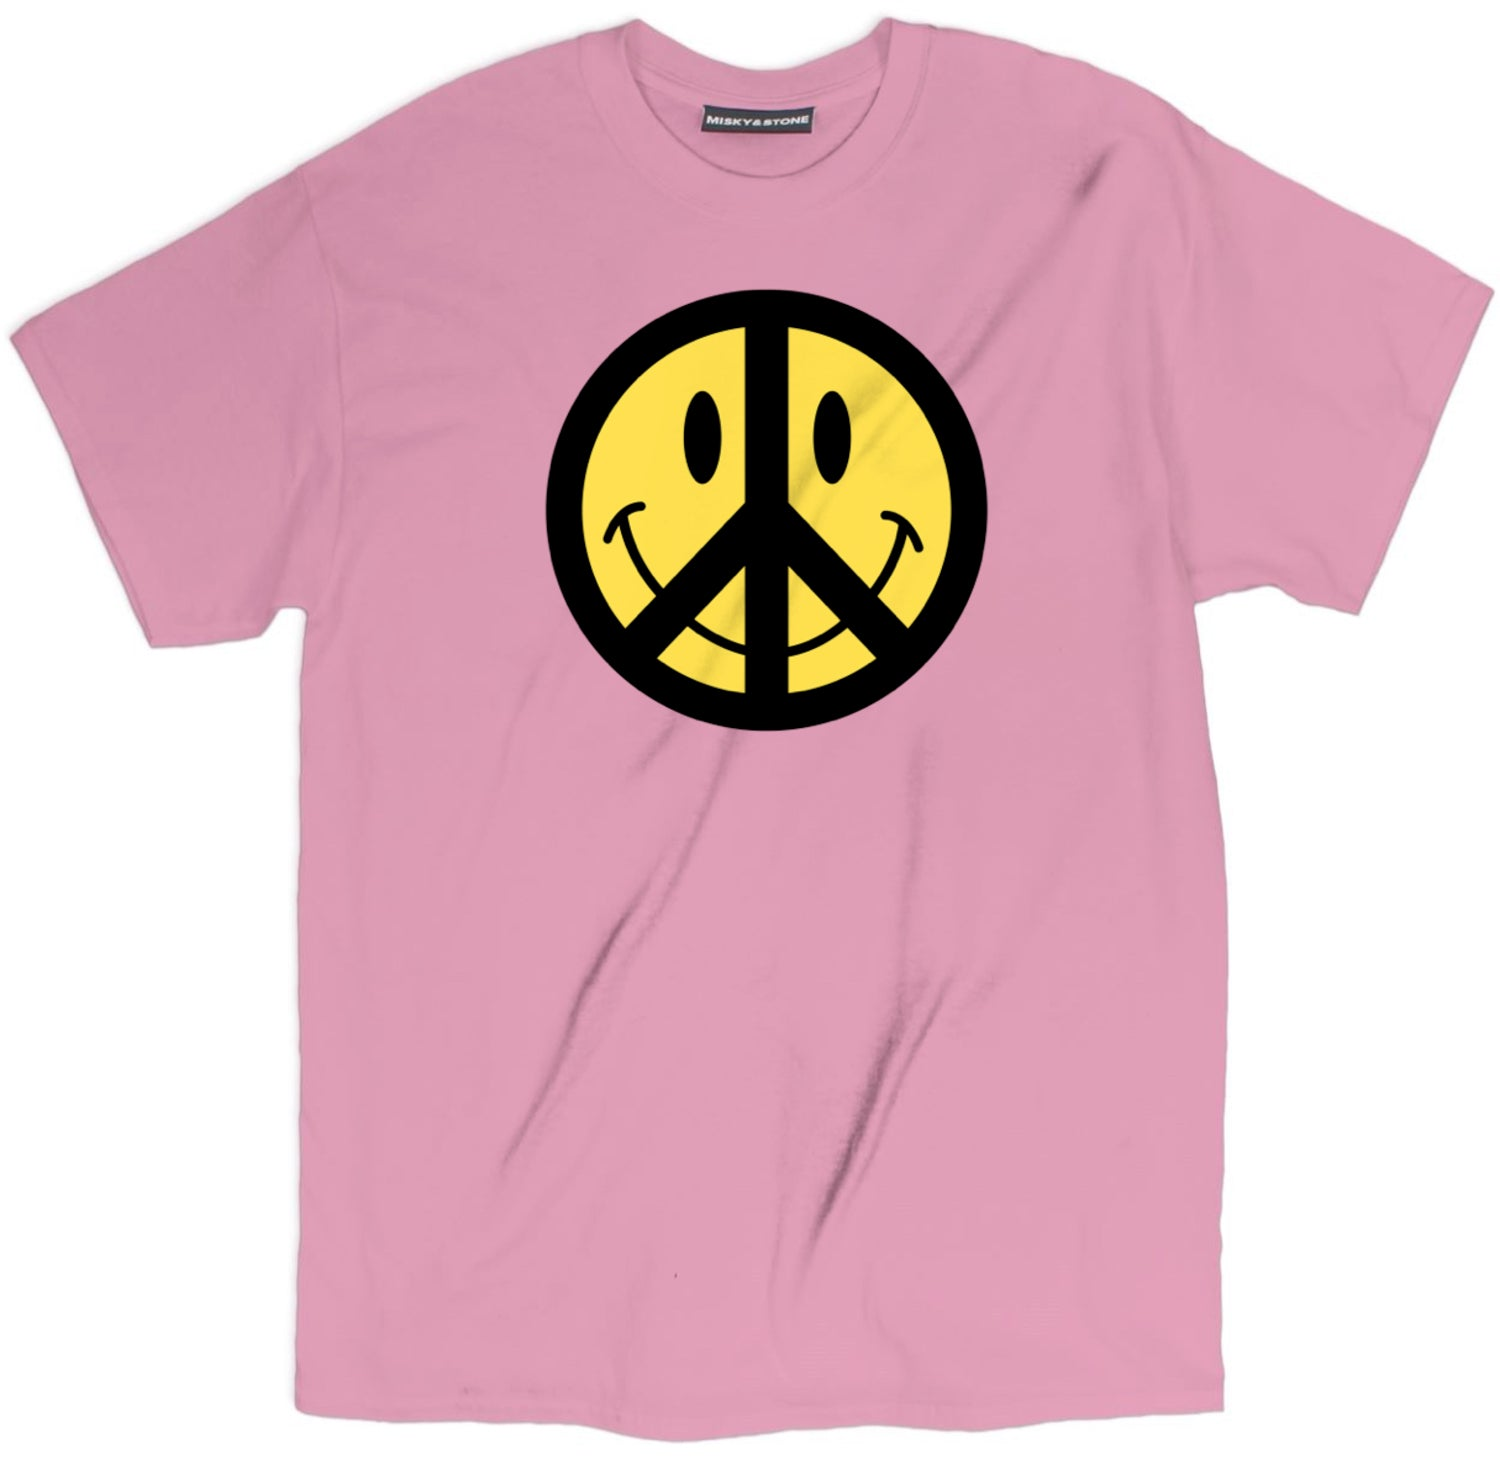 Smile Peace Sign Tee